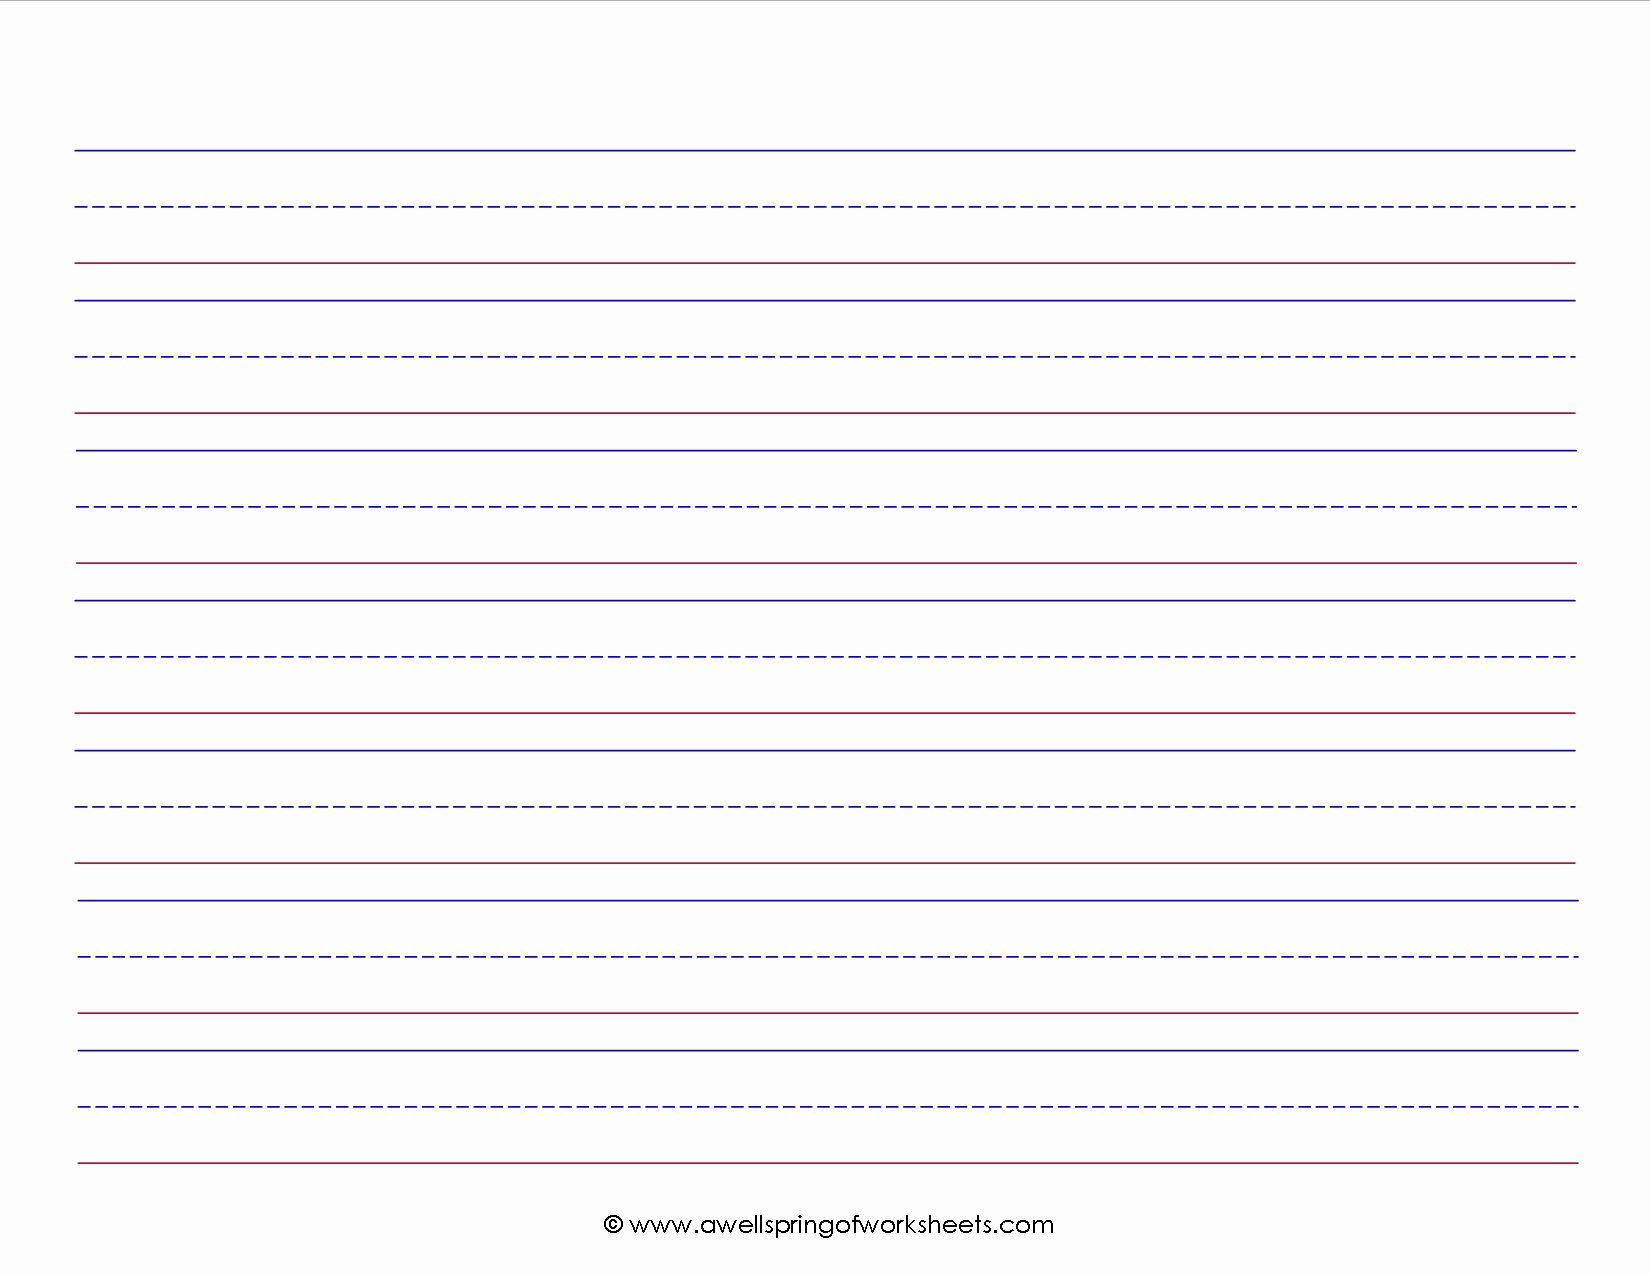 Kindergarten Paper with Lines Inspirational Free Printable Kindergarten Writing Paper Template